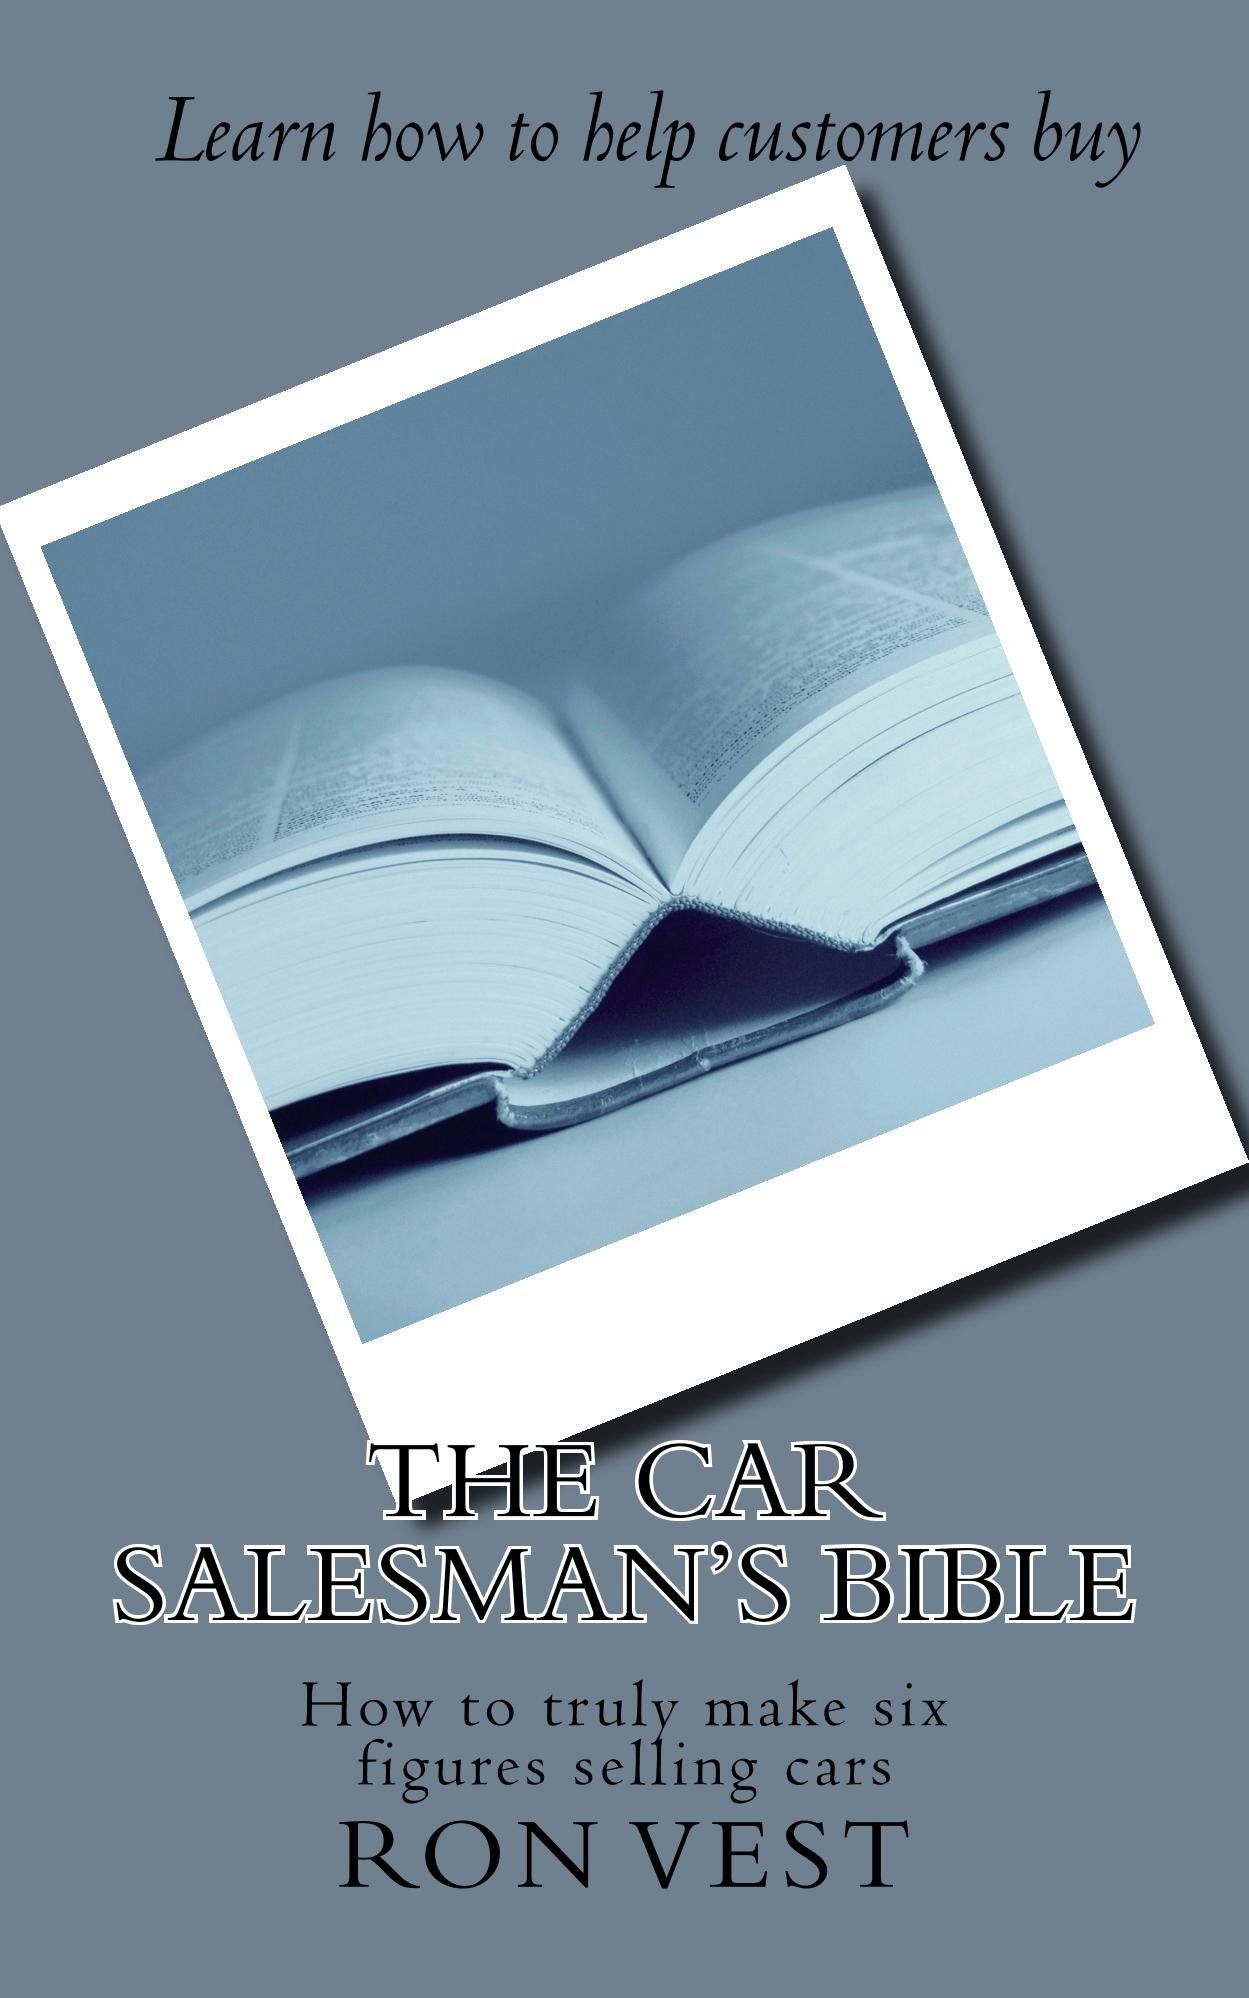 The Car Salesman's Bible: How to truly make six figures selling cars